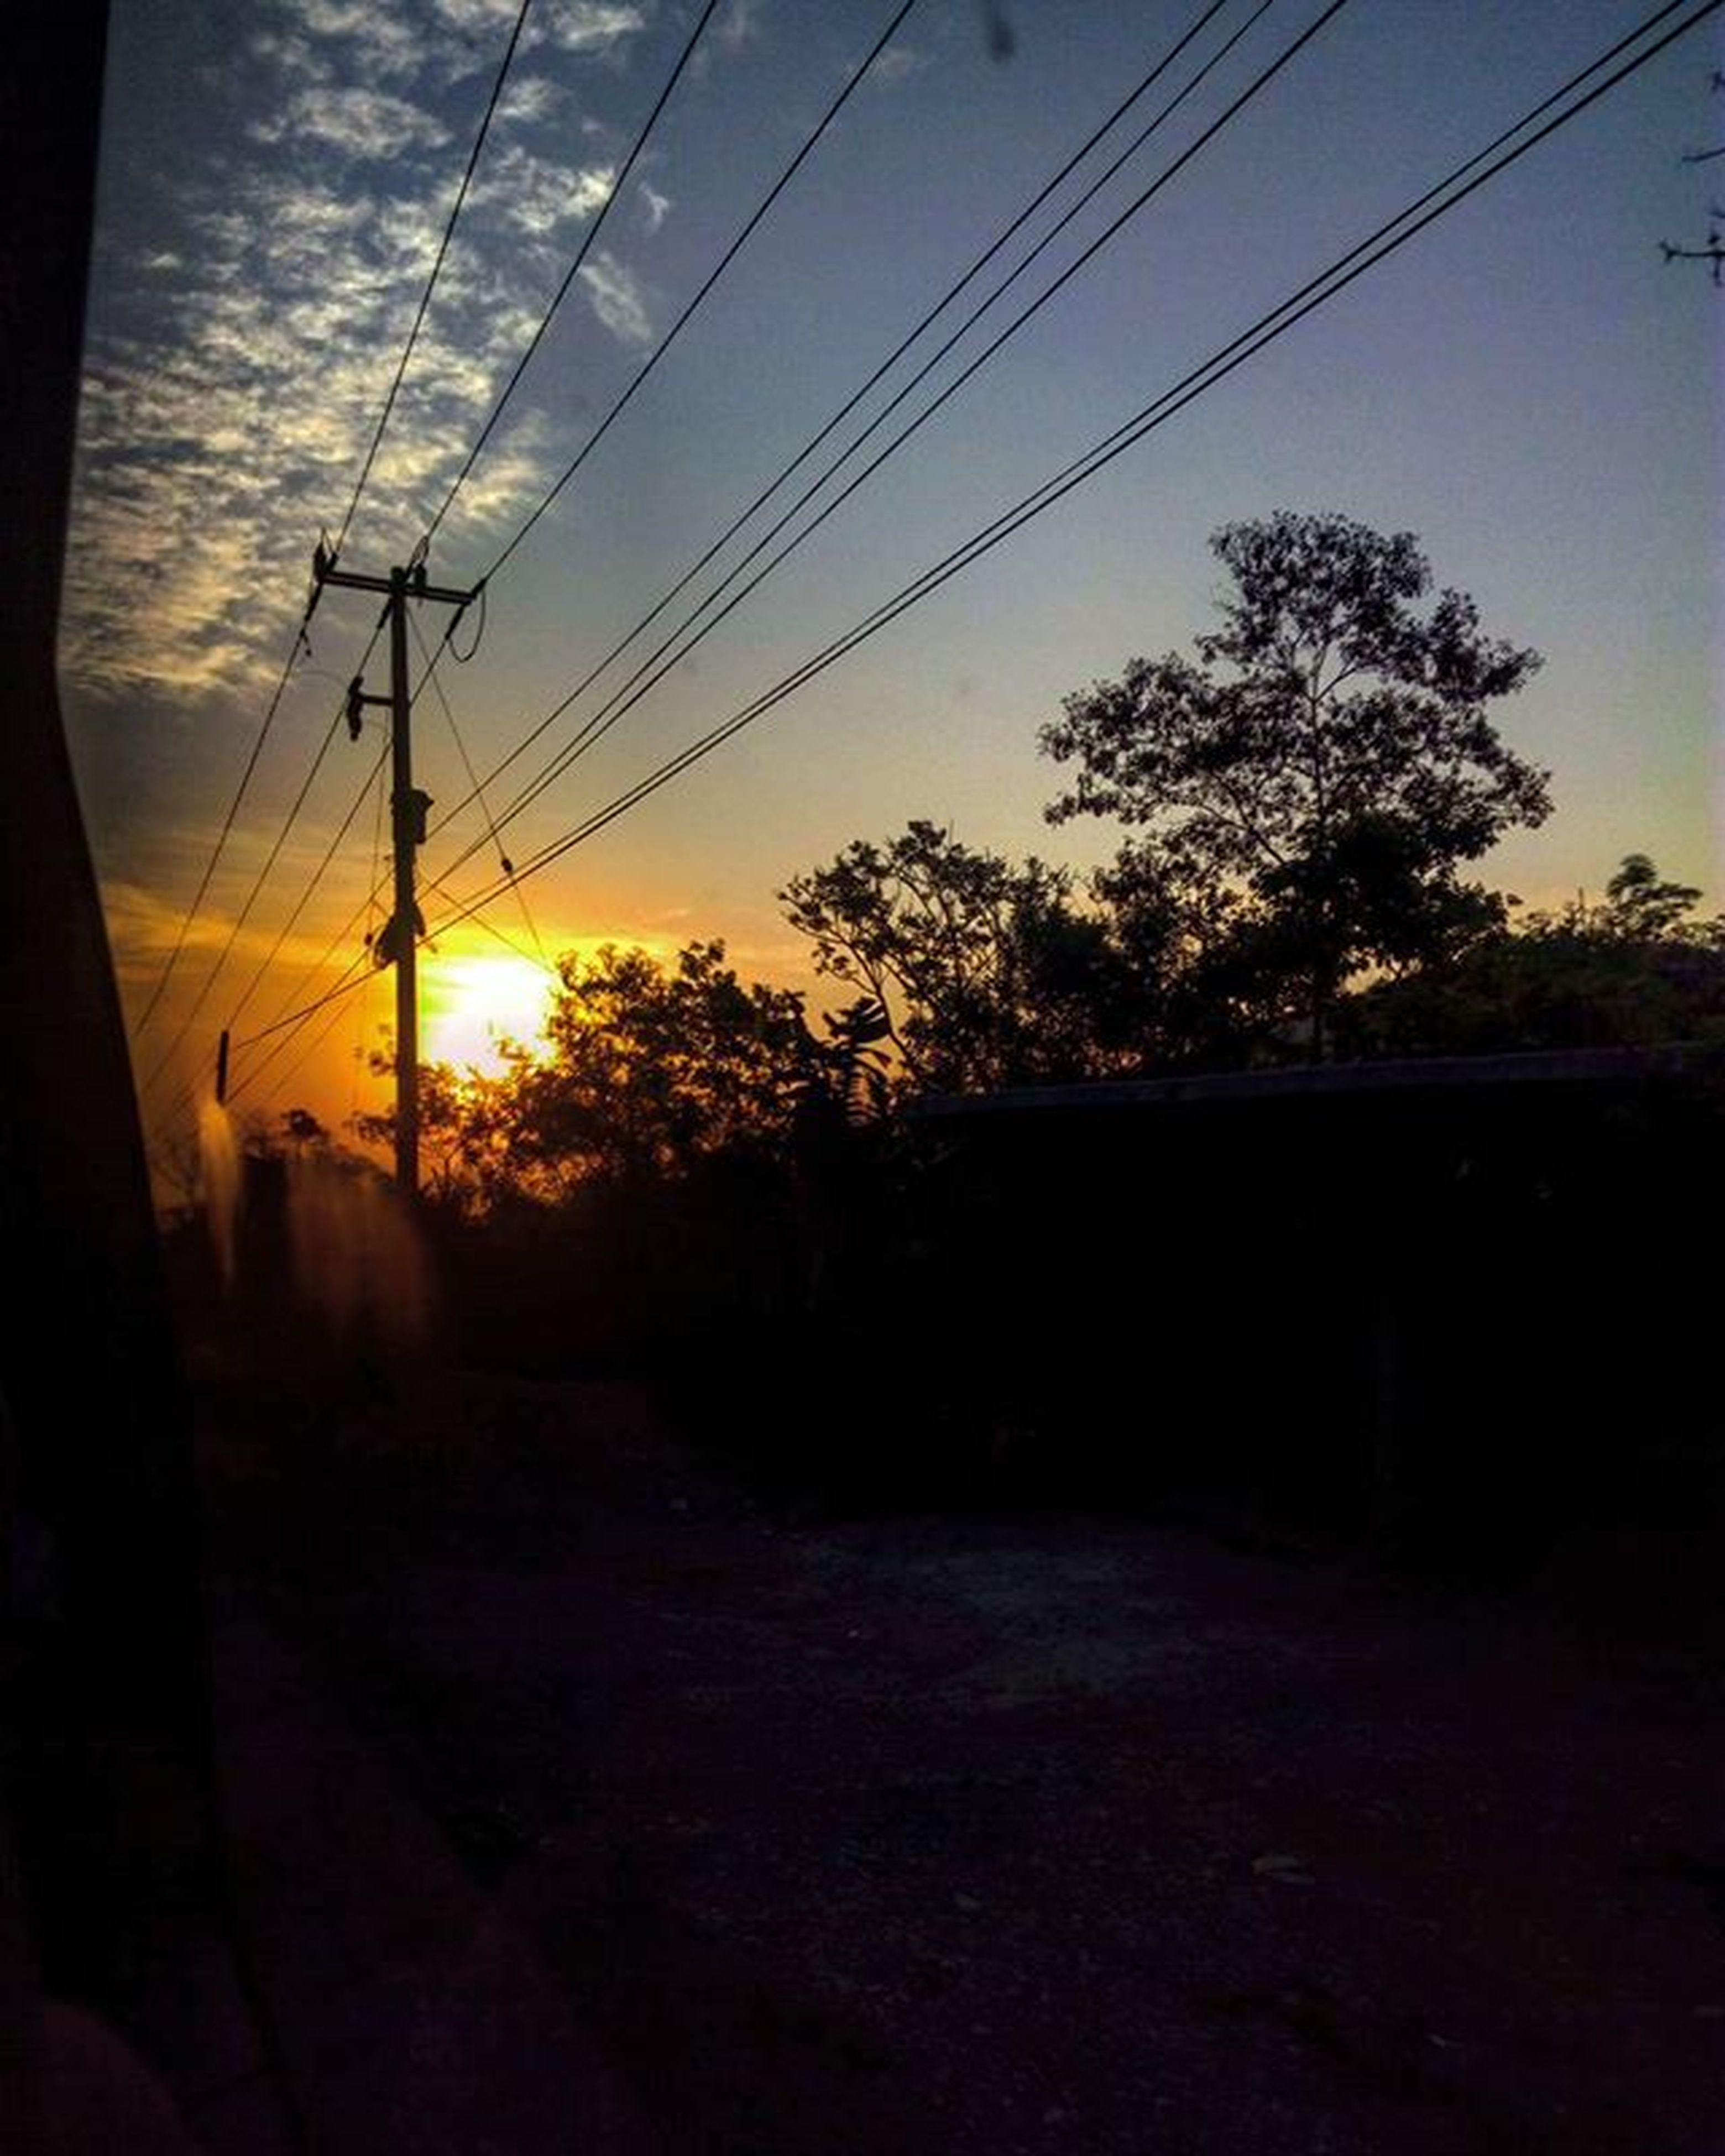 power line, electricity pylon, electricity, power supply, cable, sunset, sky, silhouette, transportation, connection, tree, power cable, fuel and power generation, road, sunlight, sun, nature, street, no people, the way forward